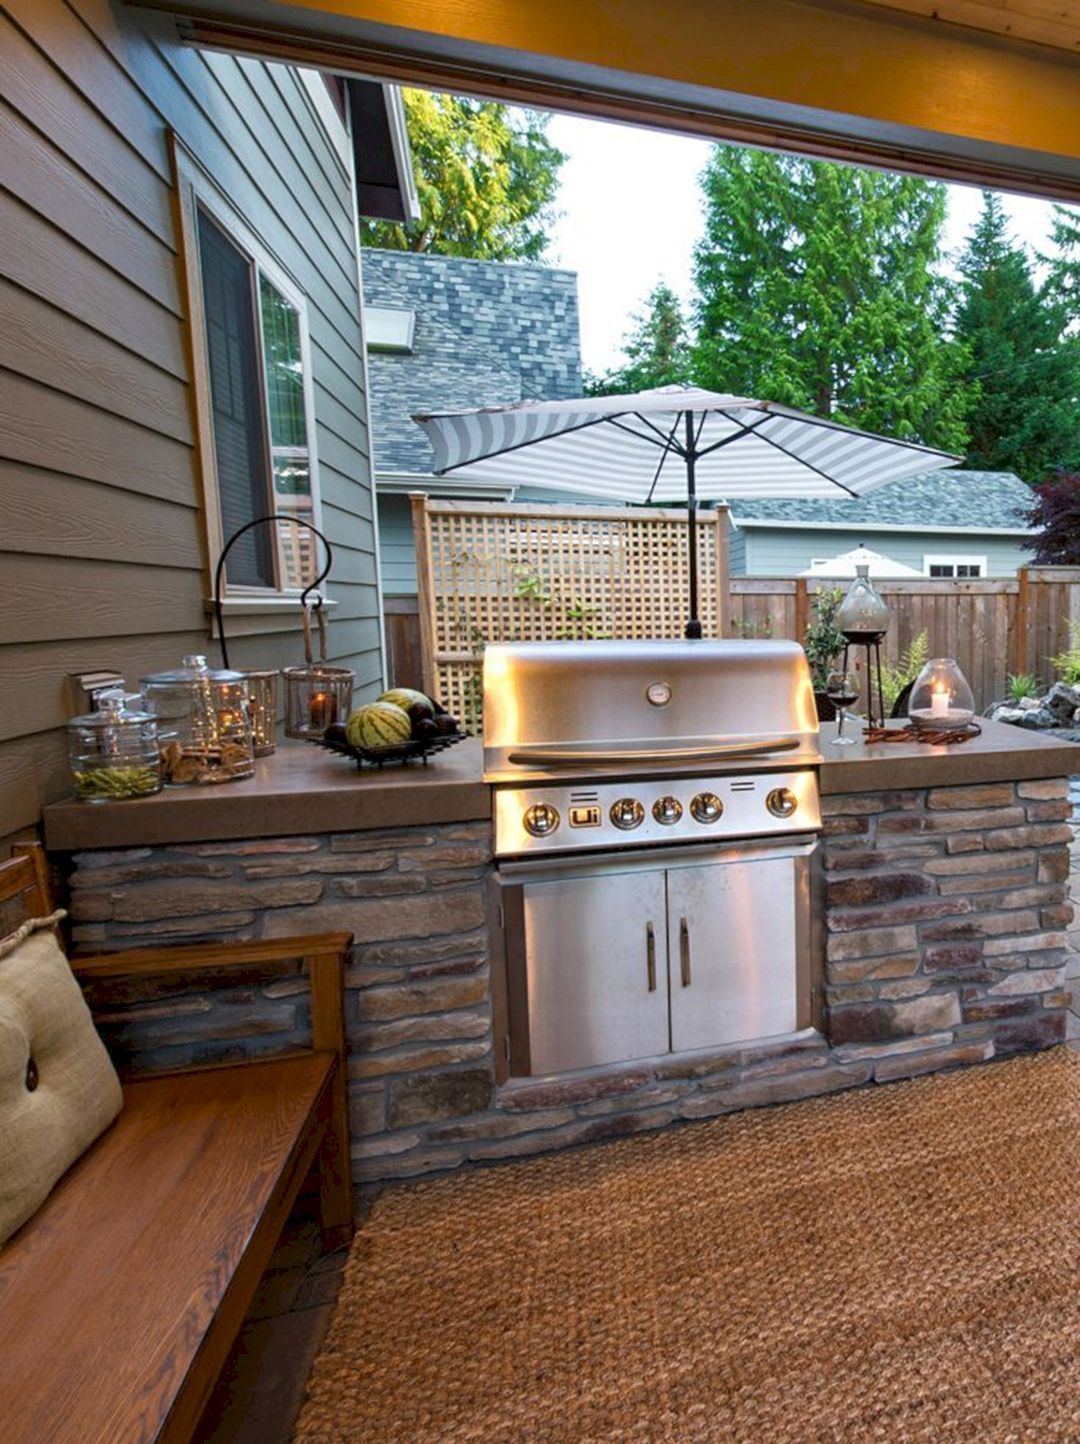 Best Amazing Outdoor Kitchen Ideas Design For Small Space